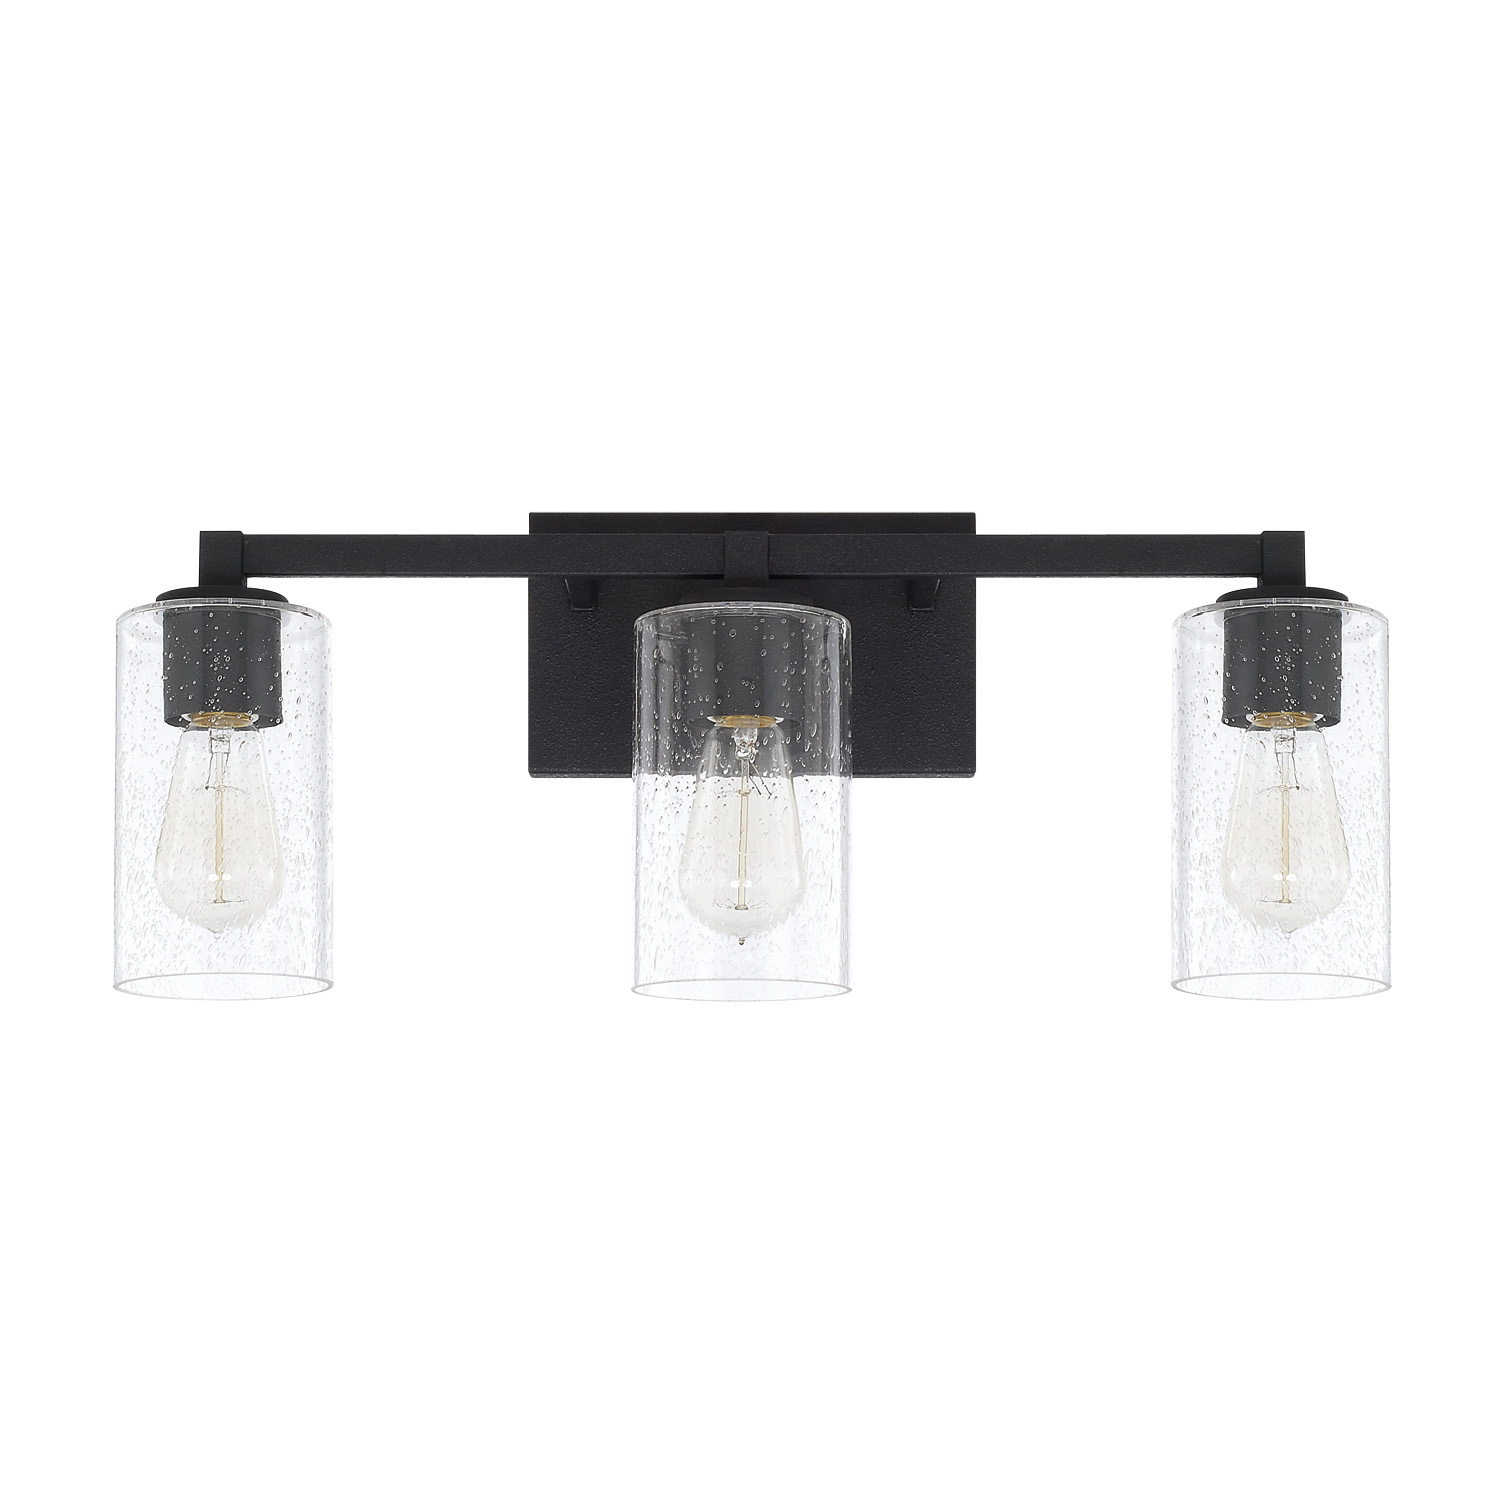 Capital Lighting 3 Light Ravenwood Vanity Light in Black Iron 119831BI-435